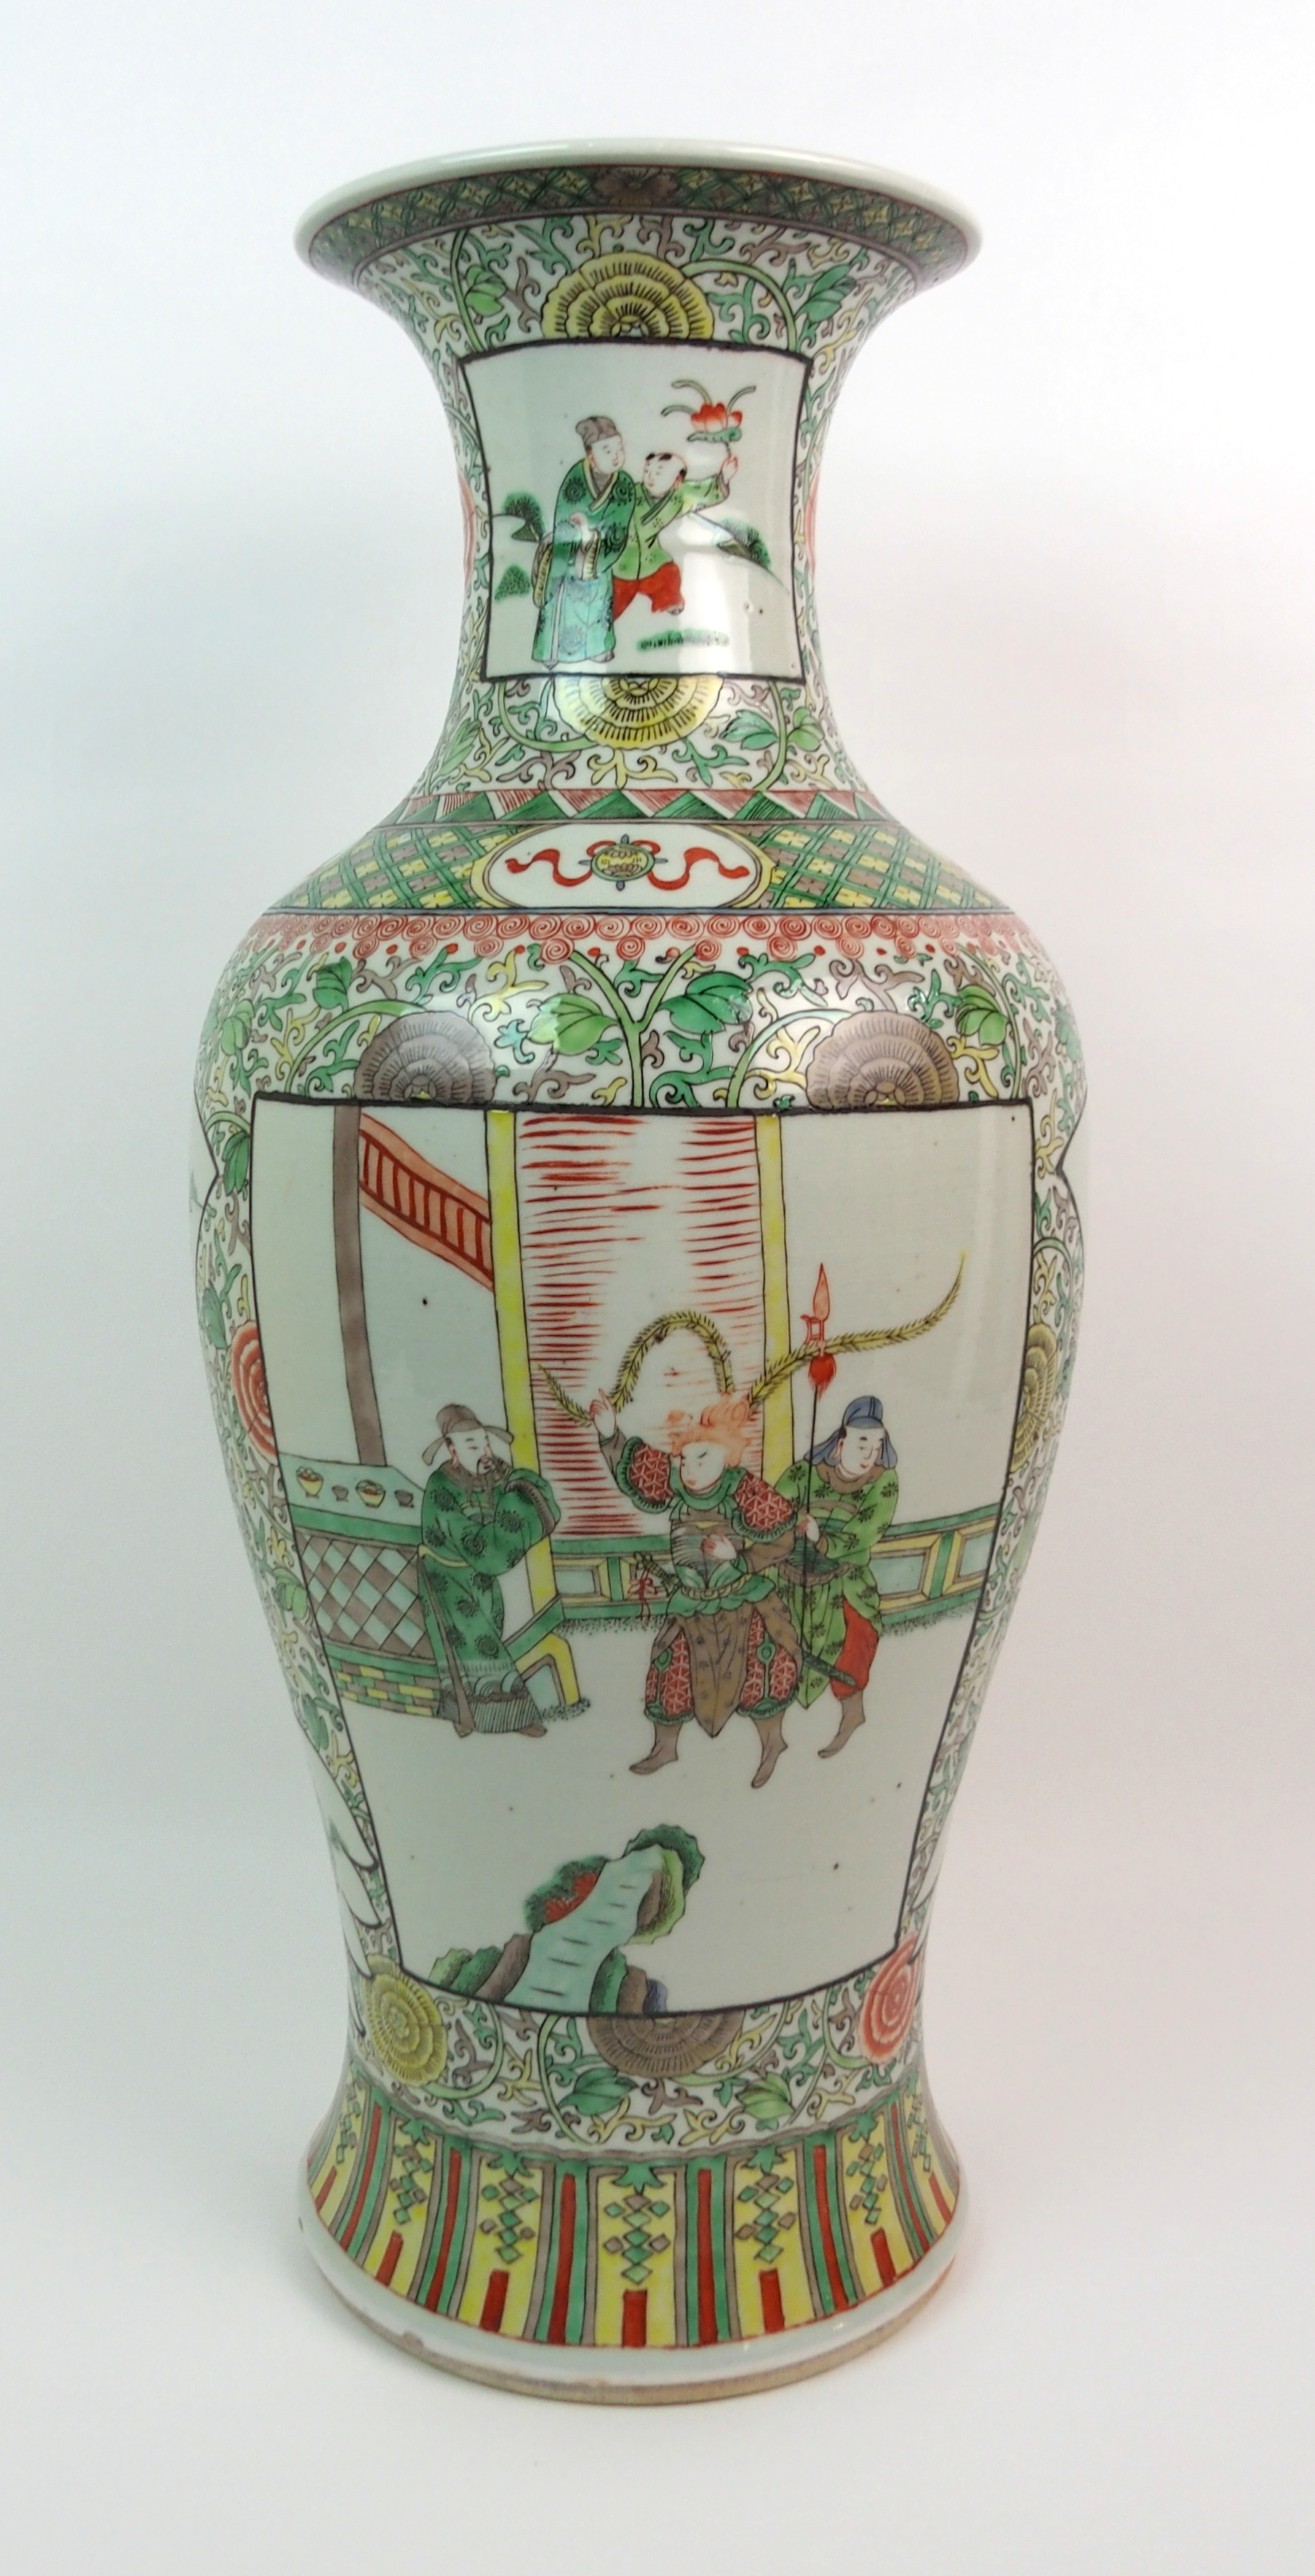 Lot 41 - A CHINESE FAMILLE VERTE LARGE BALUSTER VASE painted with panels of figures surrounded by flowers and